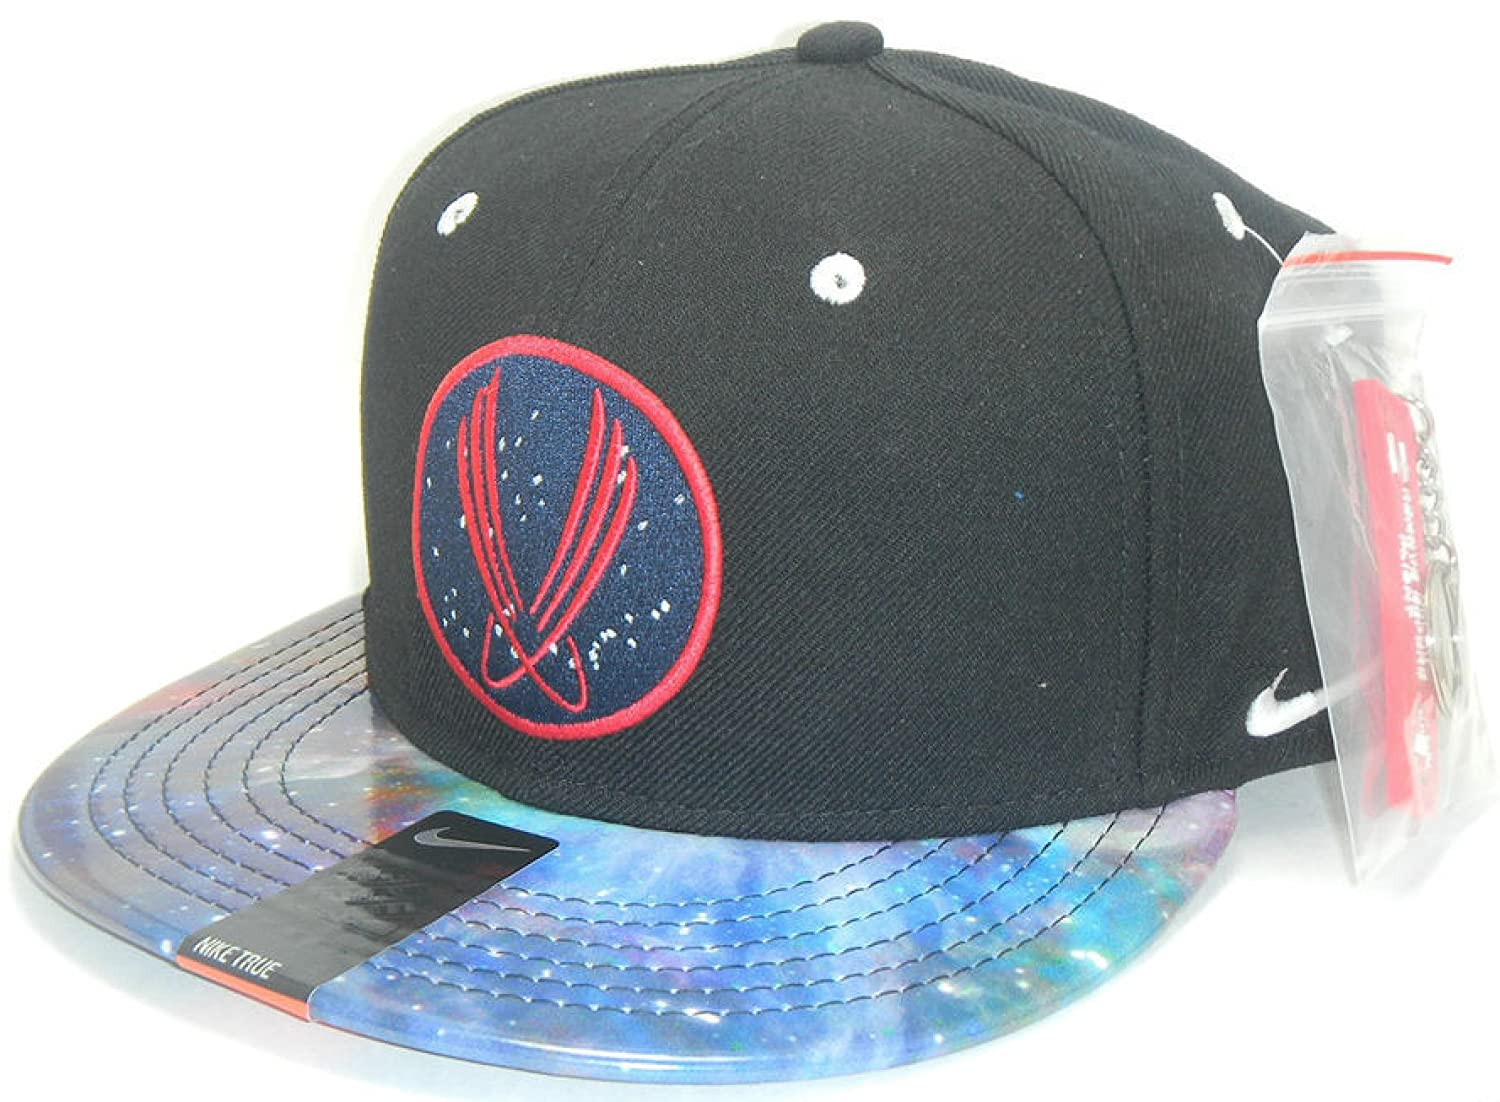 huge selection of a019e f8608 Nike Men s True QT+ Area 72 Galaxy Foamposite Snapback Cap Black Multi   Amazon.co.uk  Sports   Outdoors